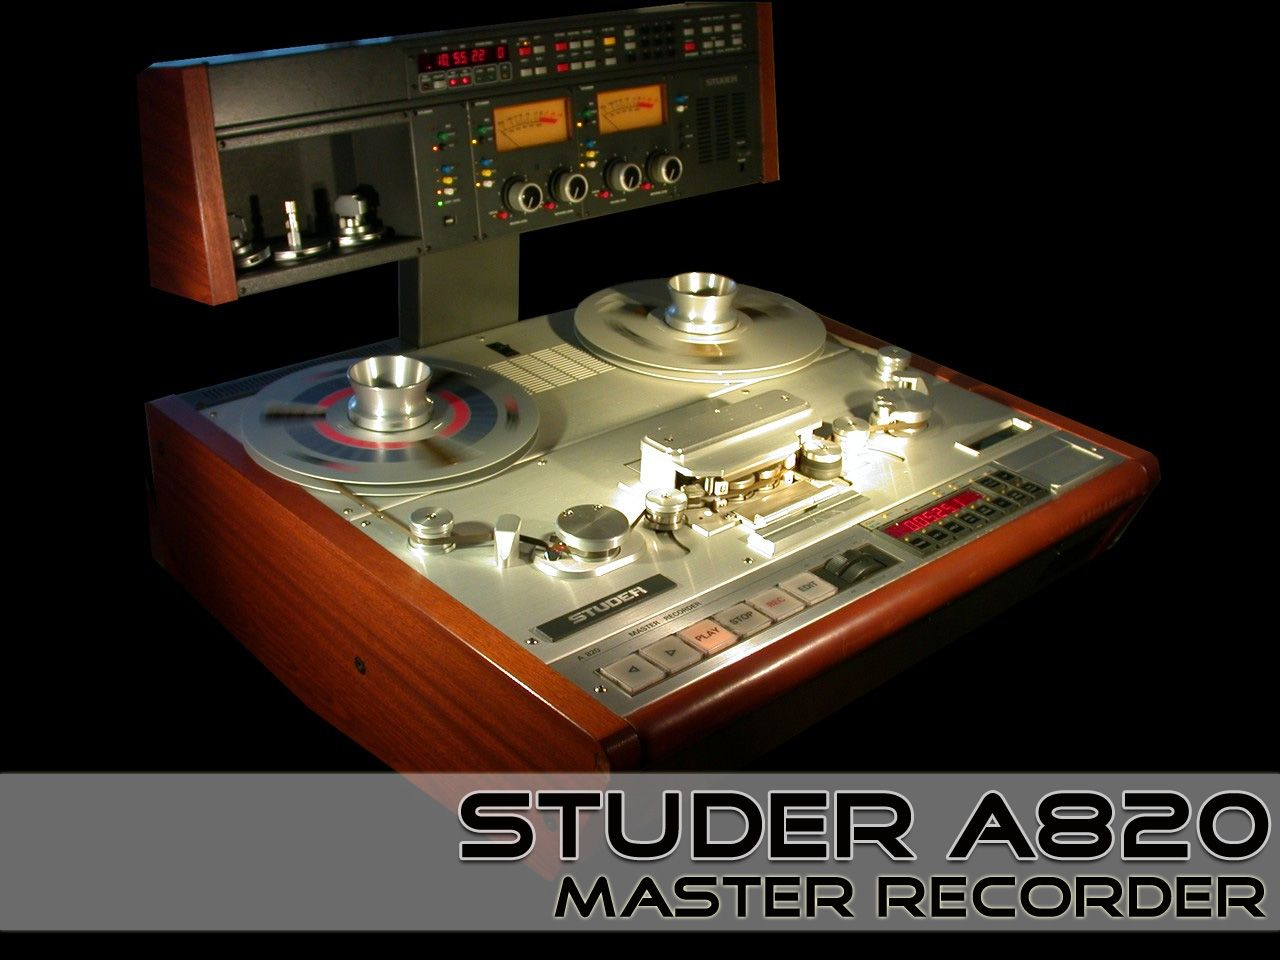 Studer A820 Master Recorder | Vintage Stereo's and Pro Audio